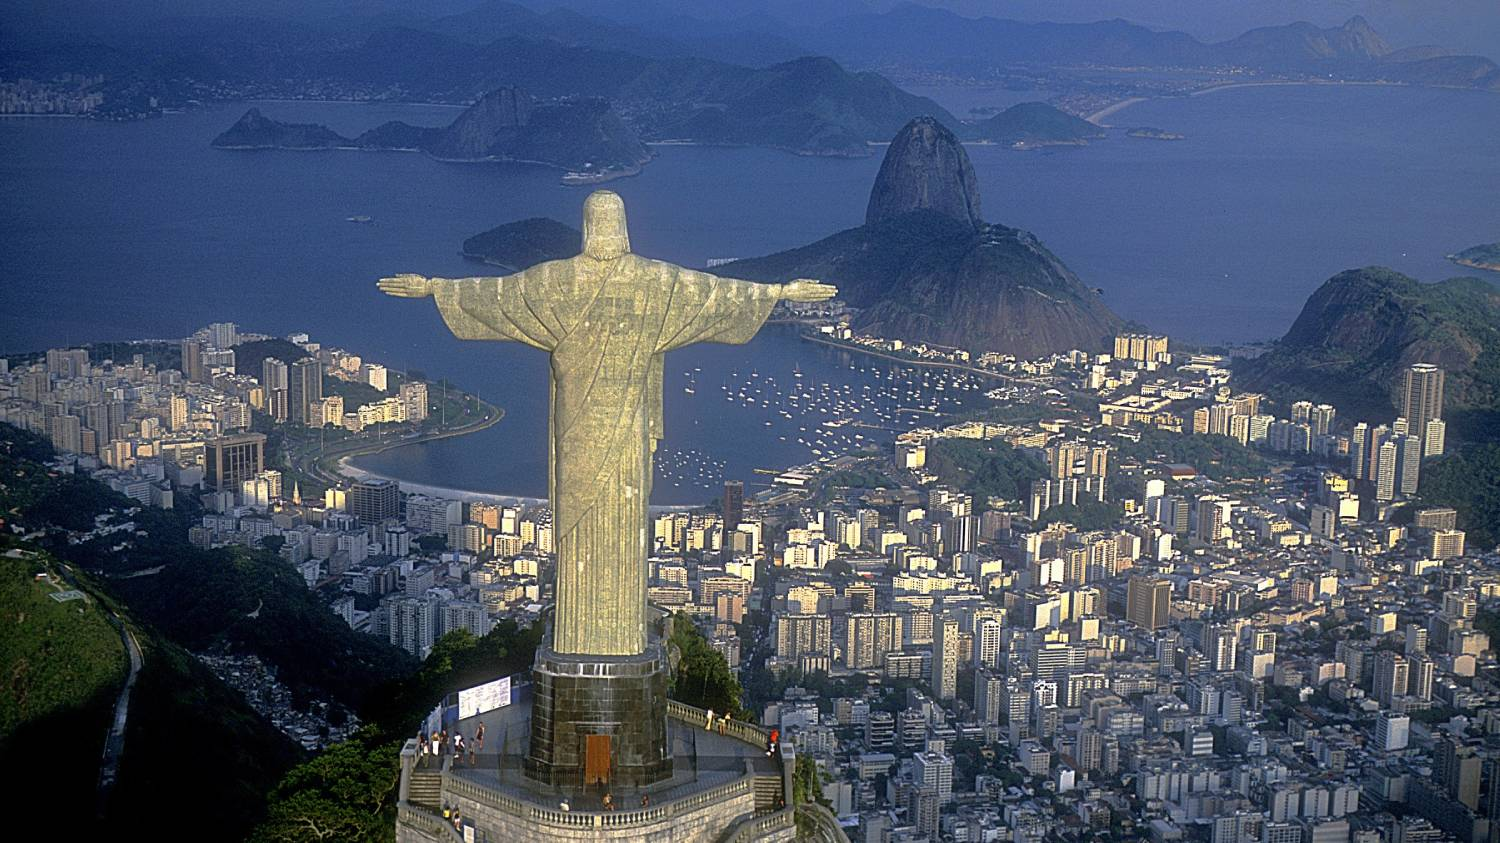 Rio de Janeiro - The Best Places To Visit In Brazil